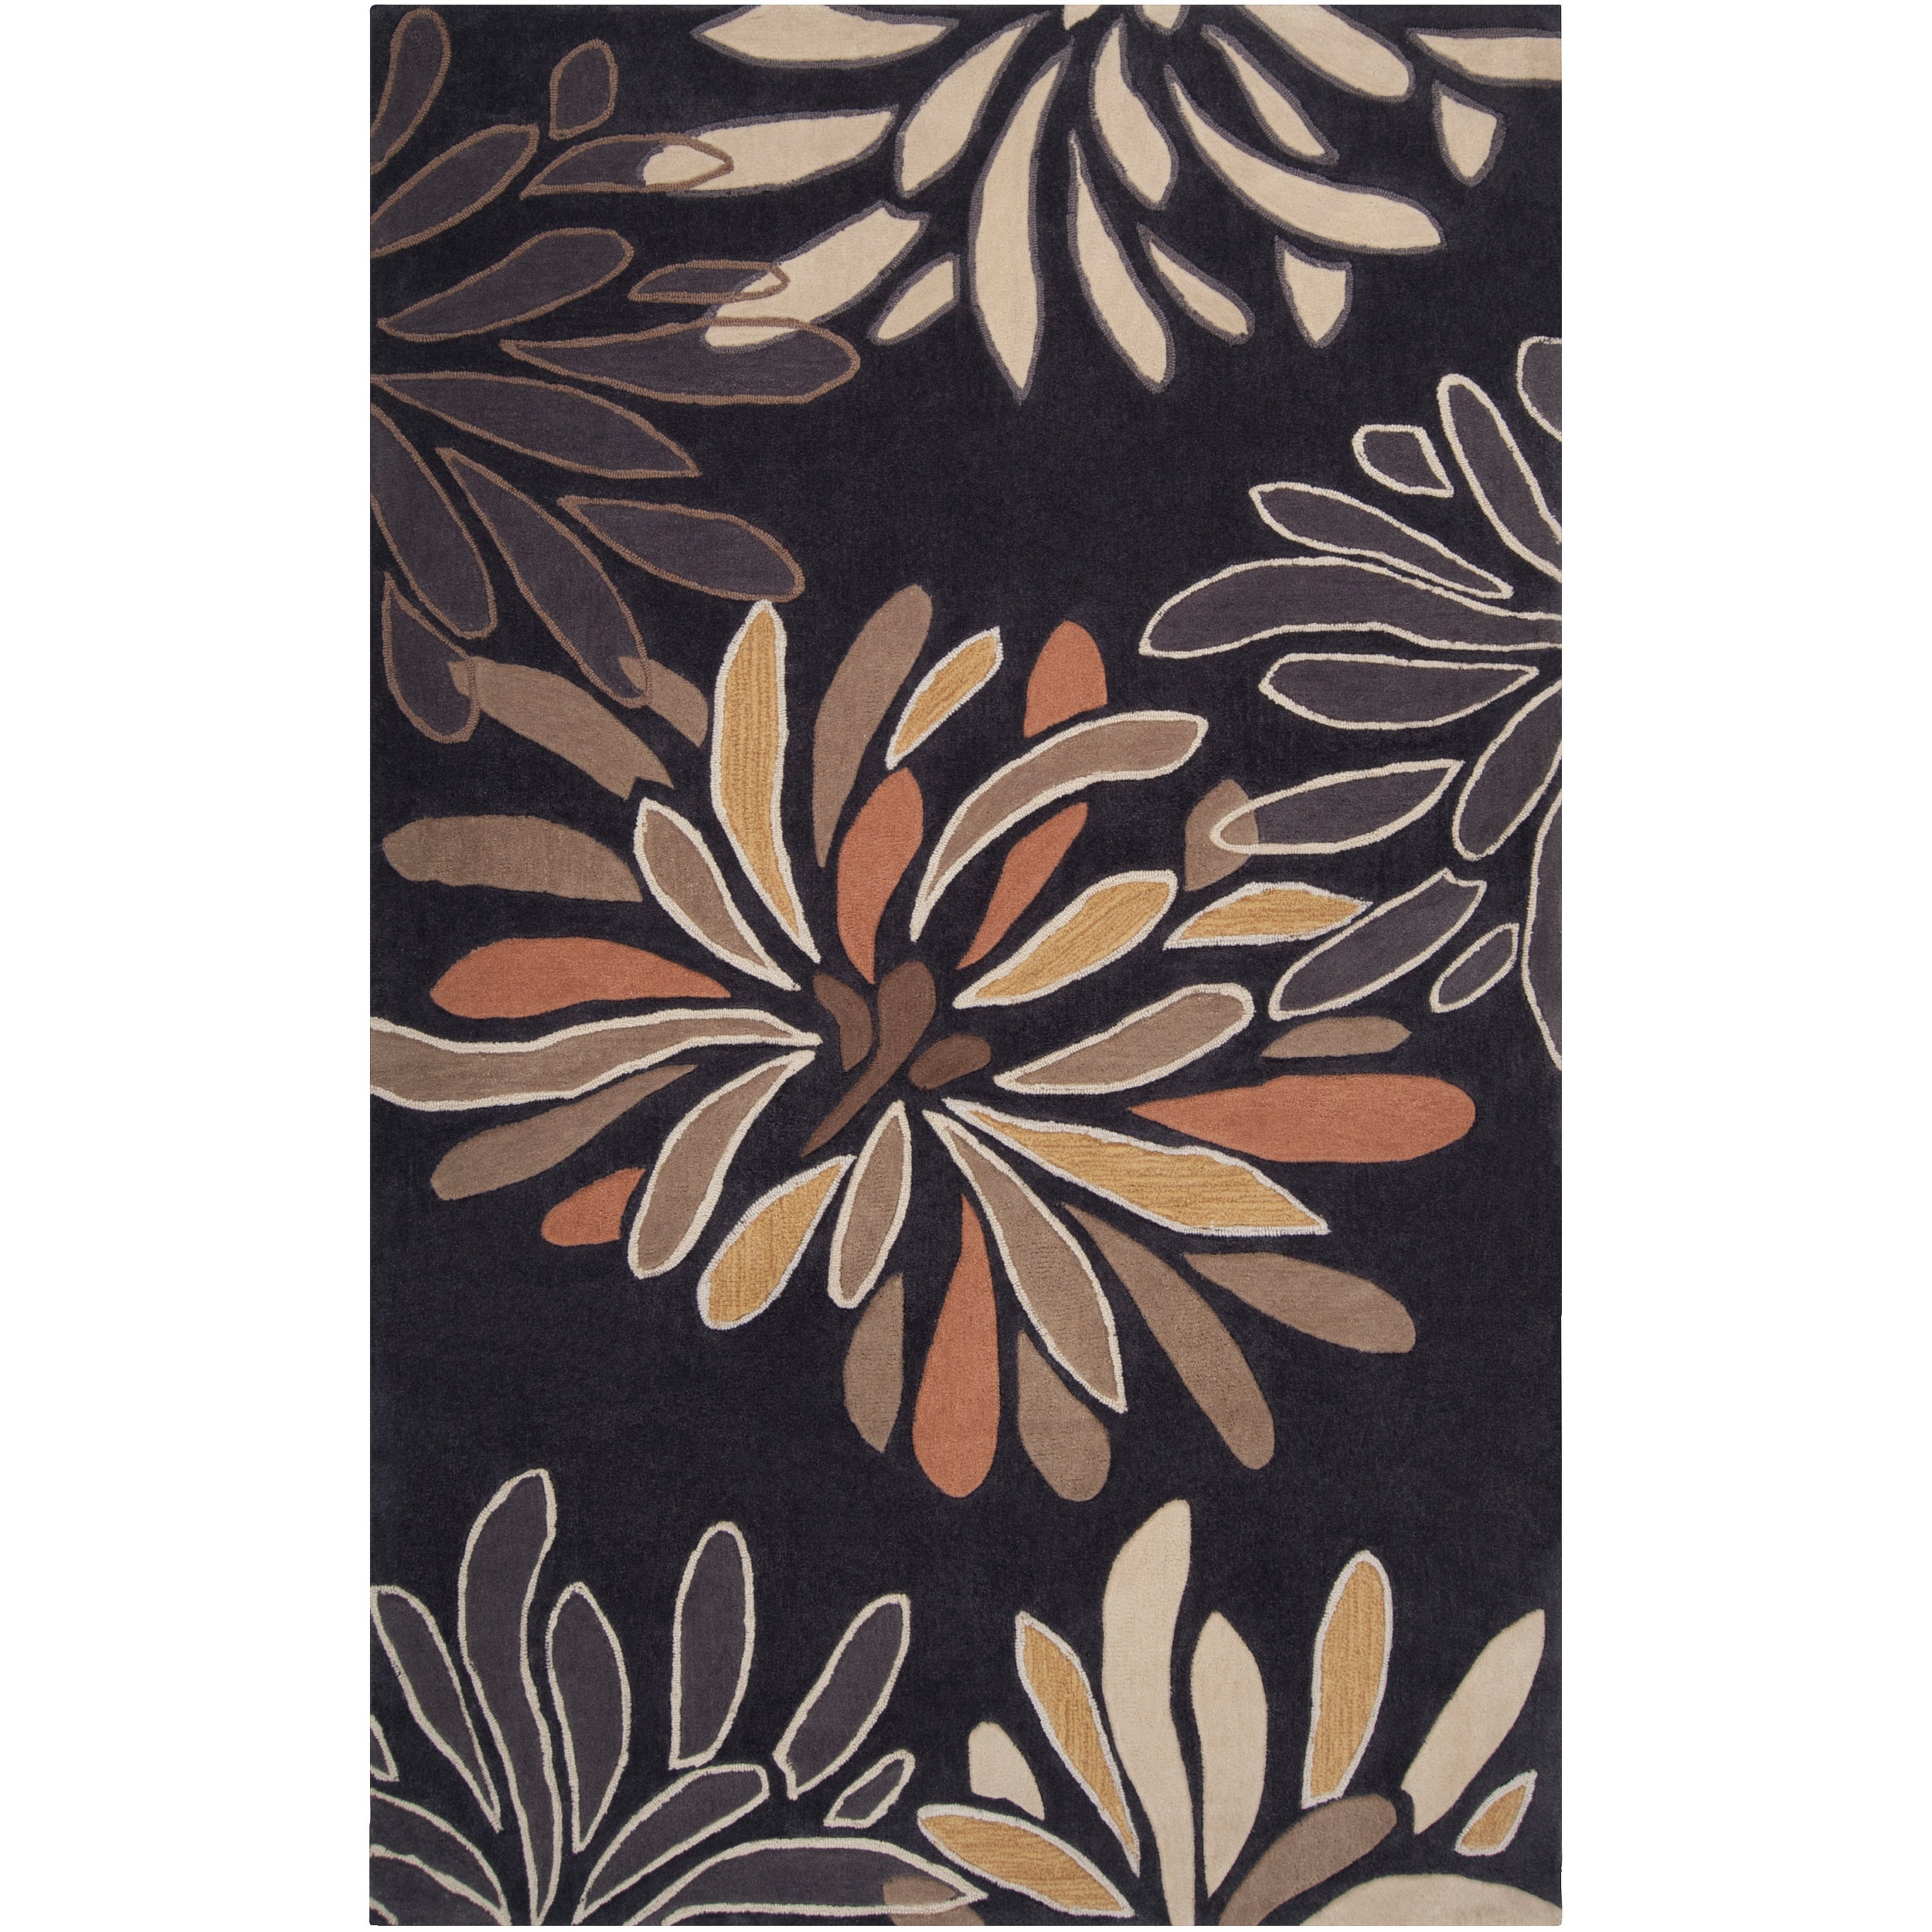 Hand Tufted Contemporary Black Nesoi Floral Rug 8 X 10